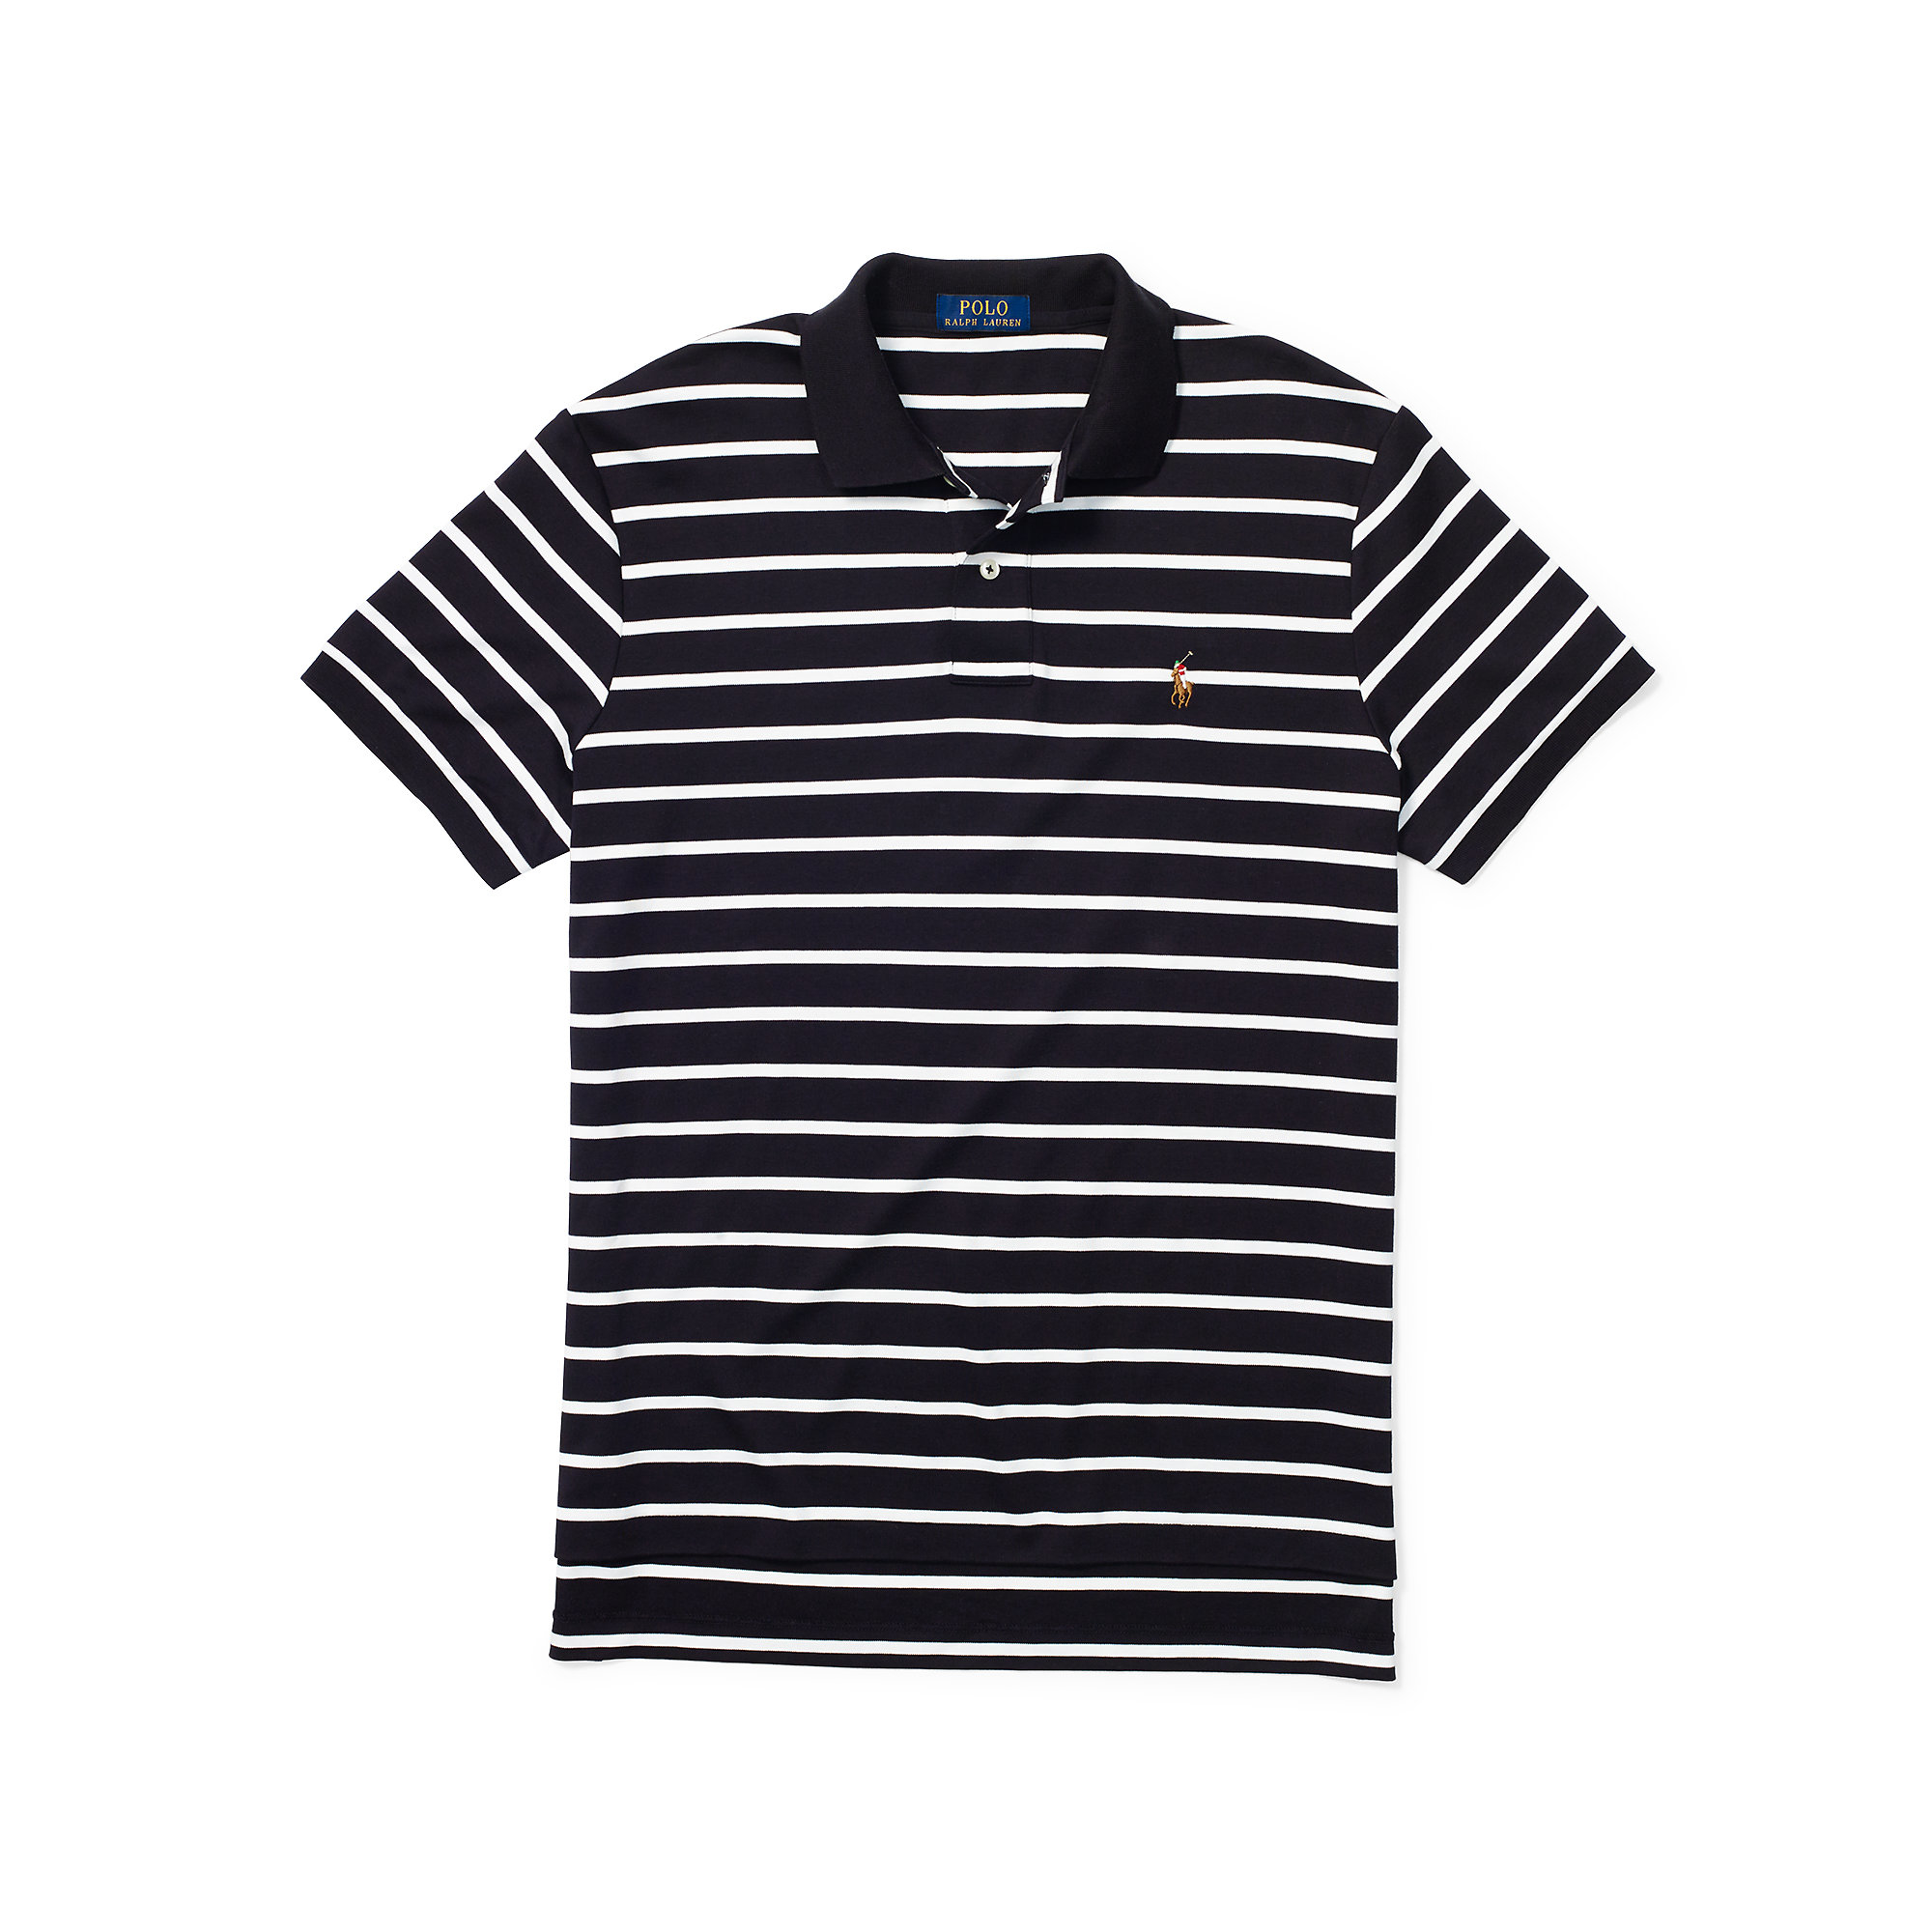 a1e11813 ... shirt 78adb 3c8a0; best price lyst polo ralph lauren striped pima soft  touch polo in black for men cf461